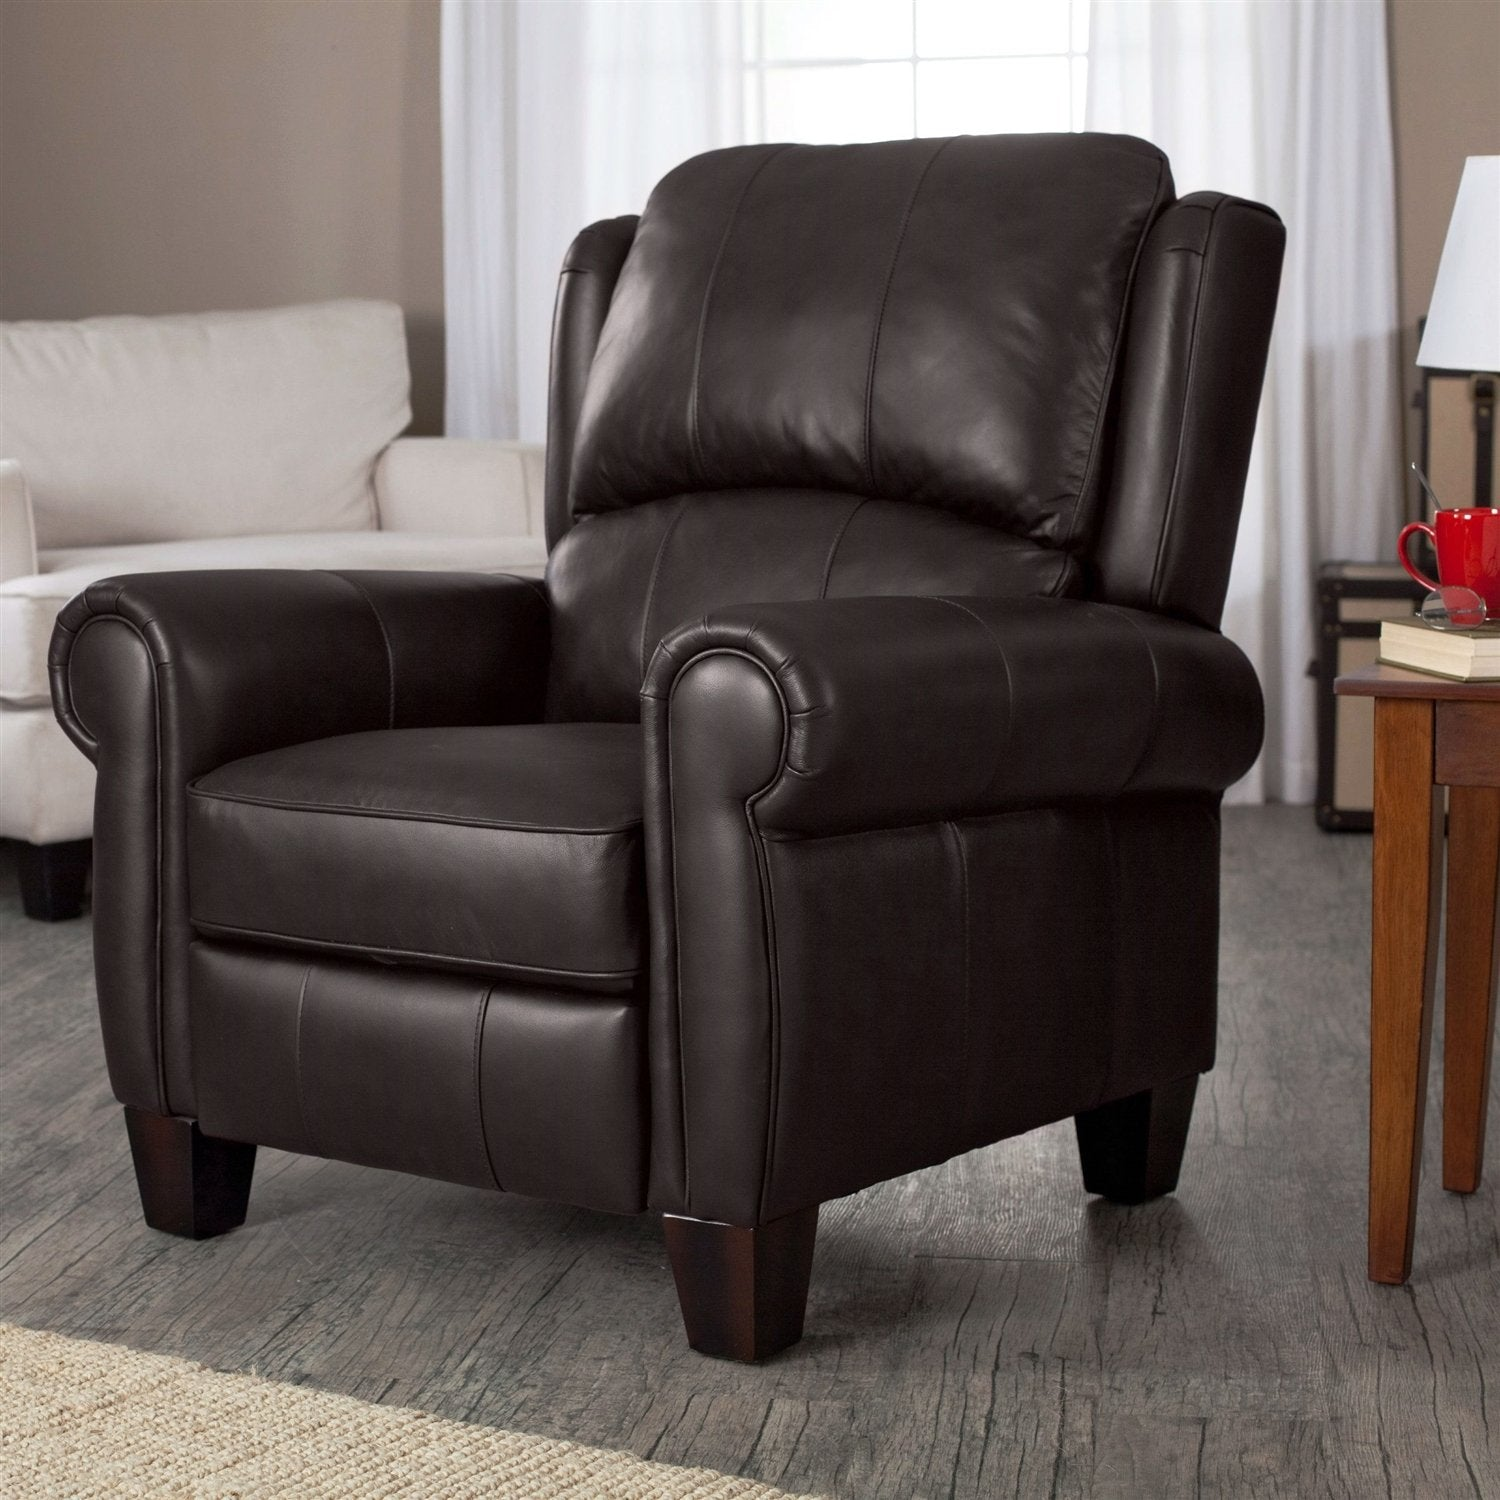 Reclining Club Chair & High Quality Top Grain Leather Upholstered